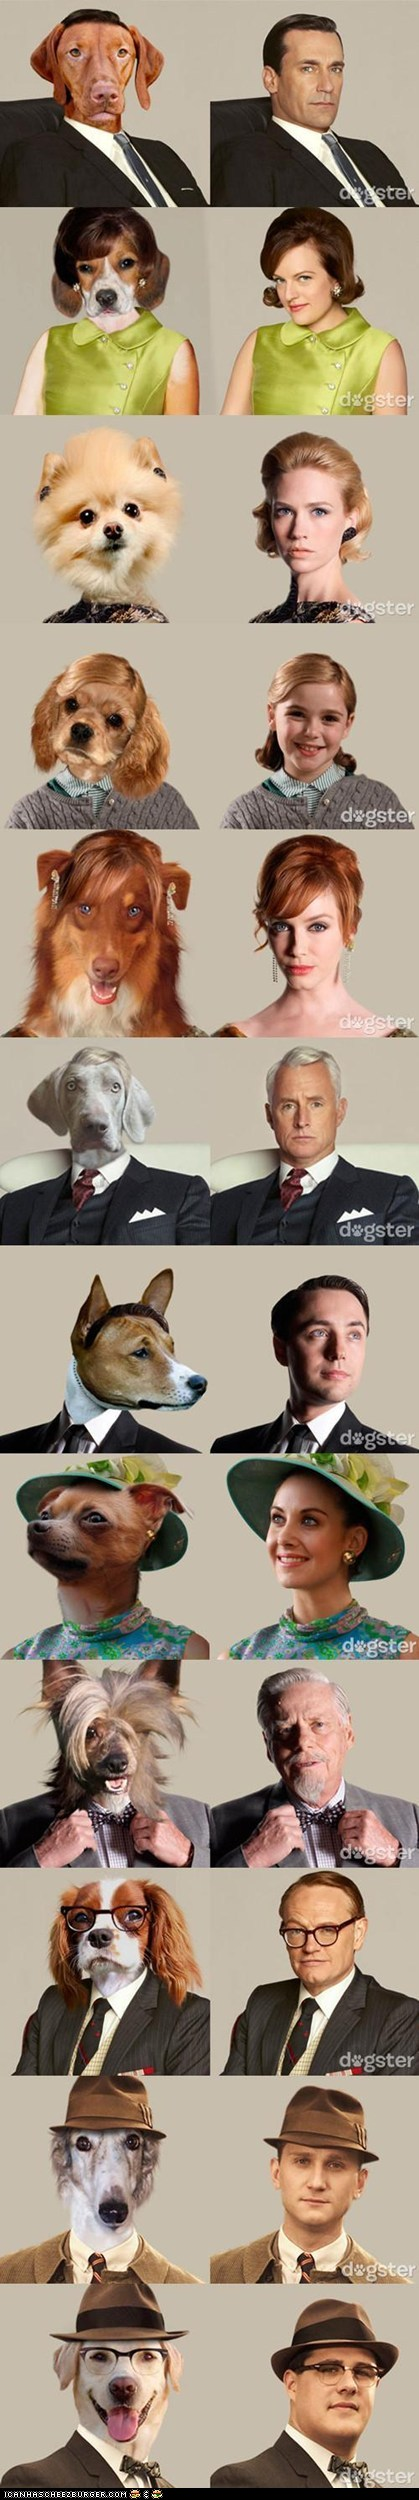 My two loves!!!! Dogs and Madmen